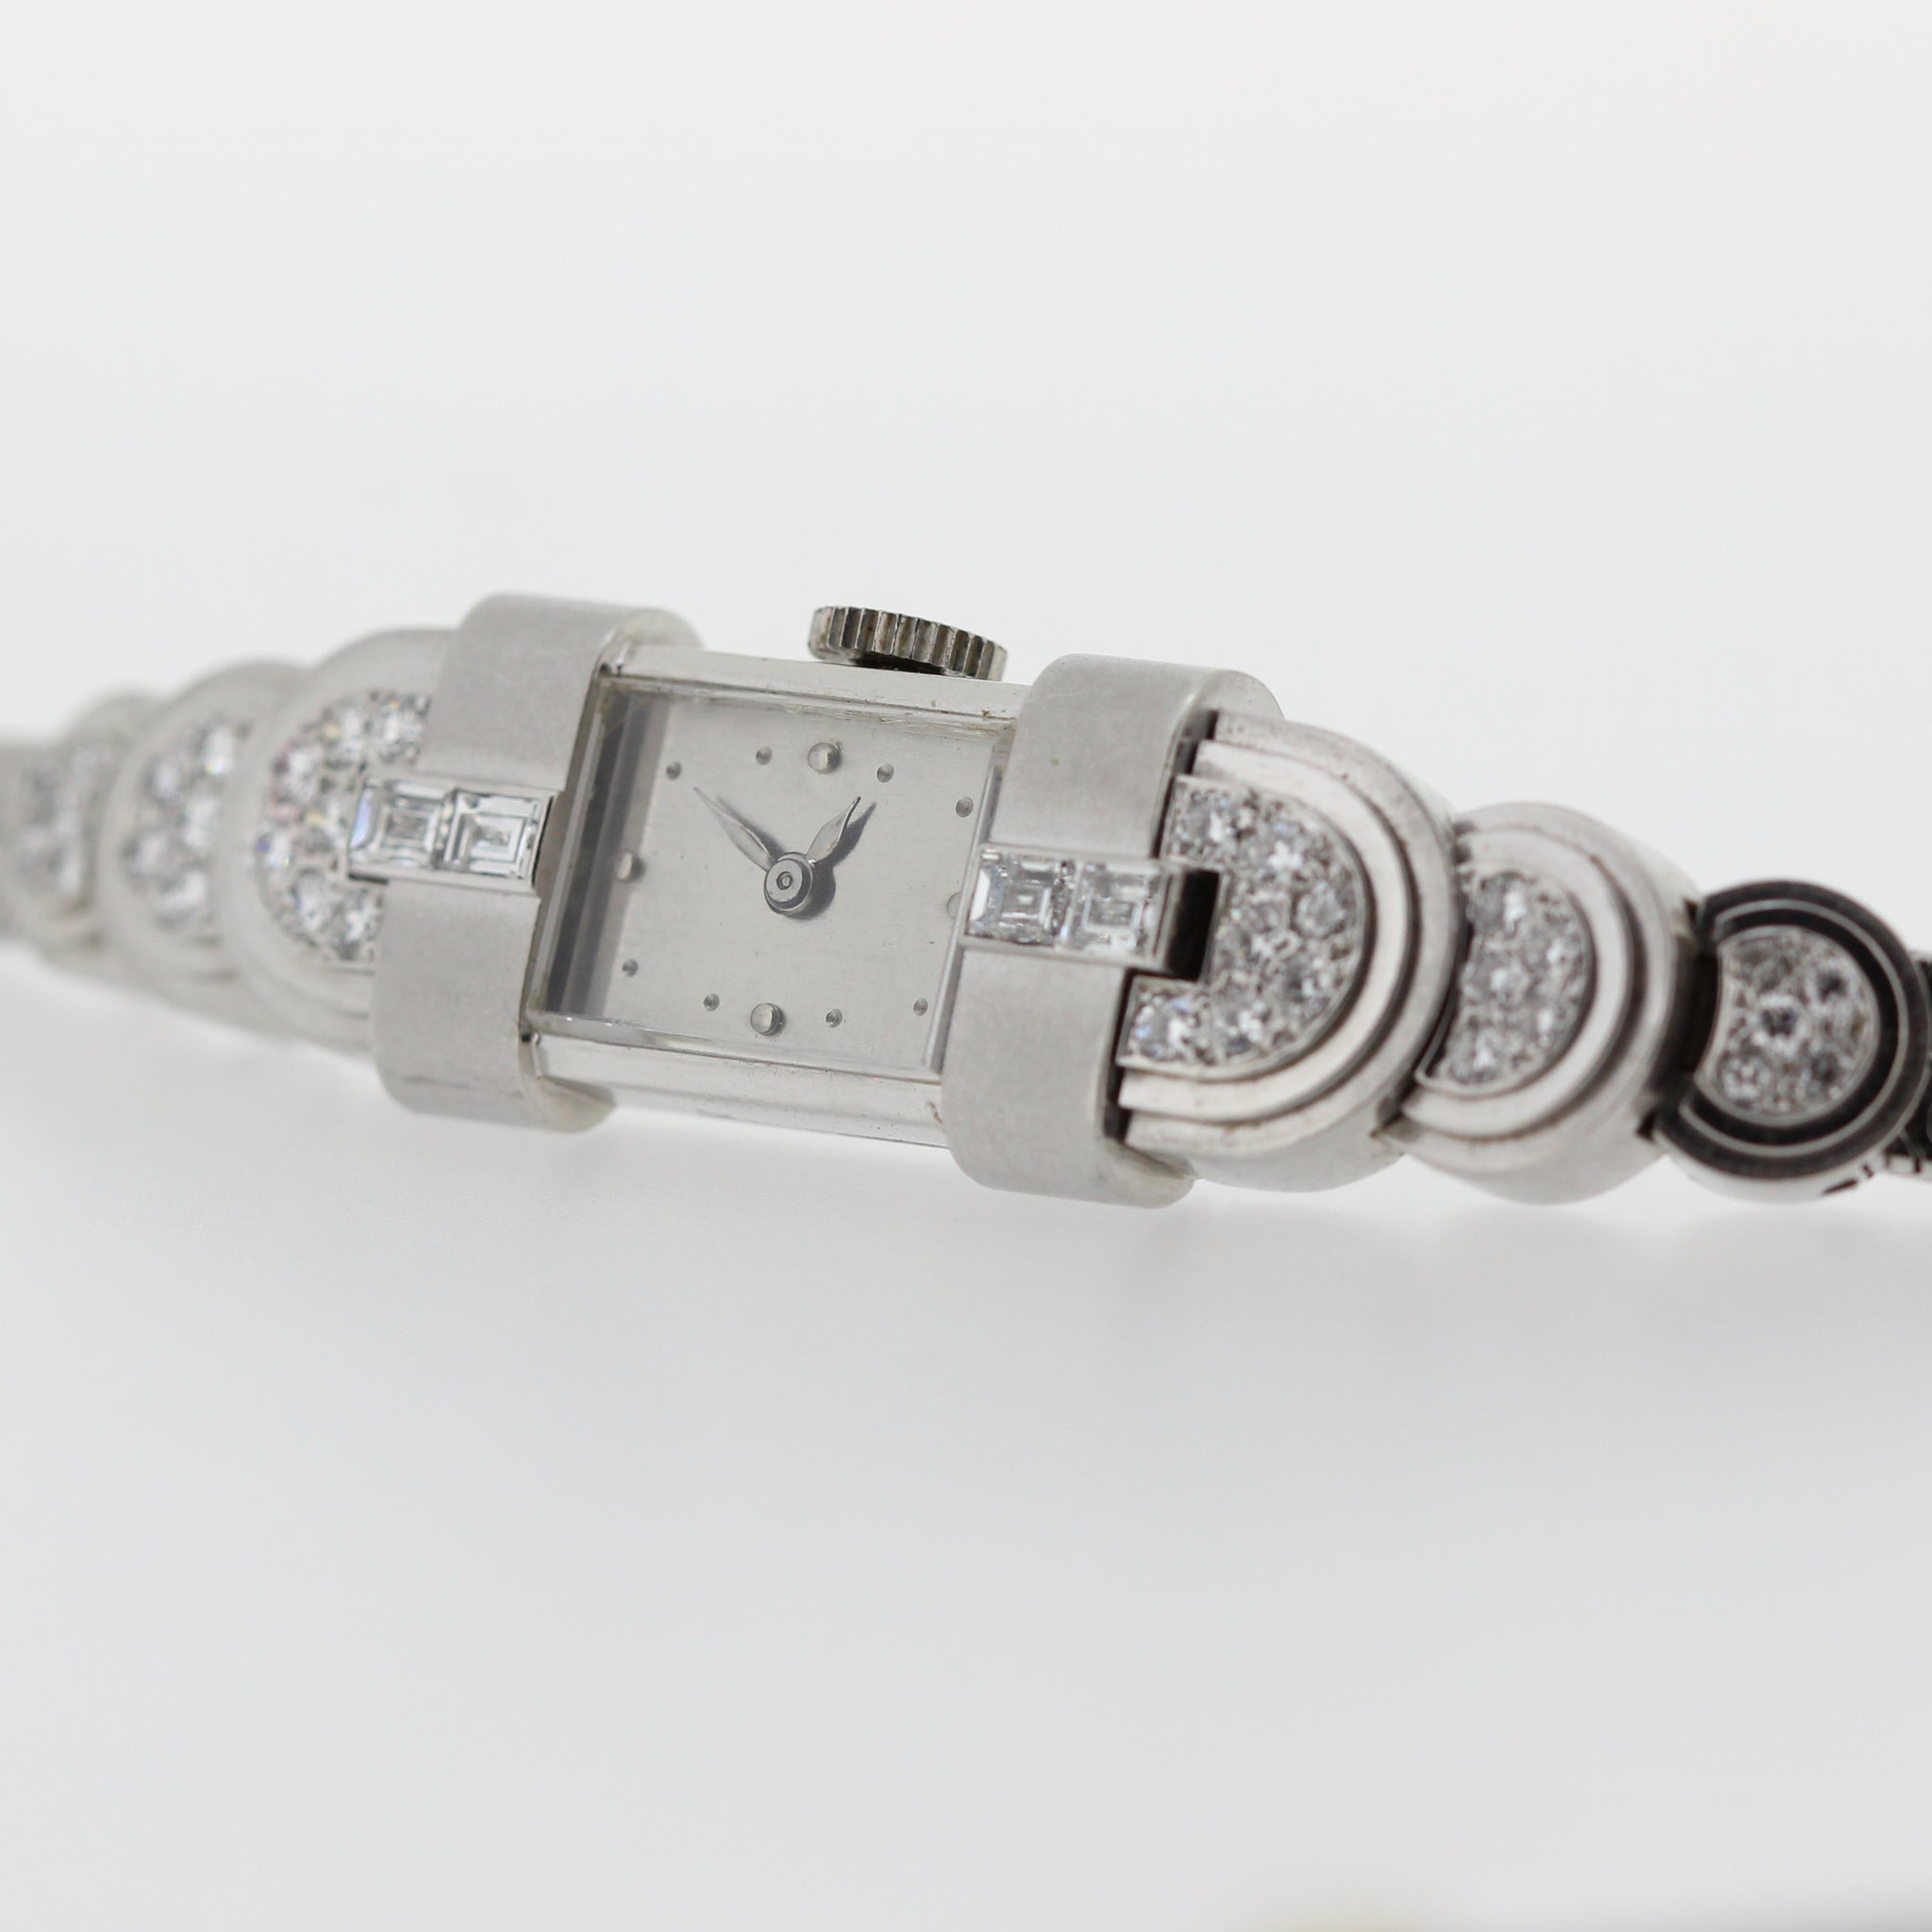 Patek Philippe Art Deco Platinum Ladies Watch